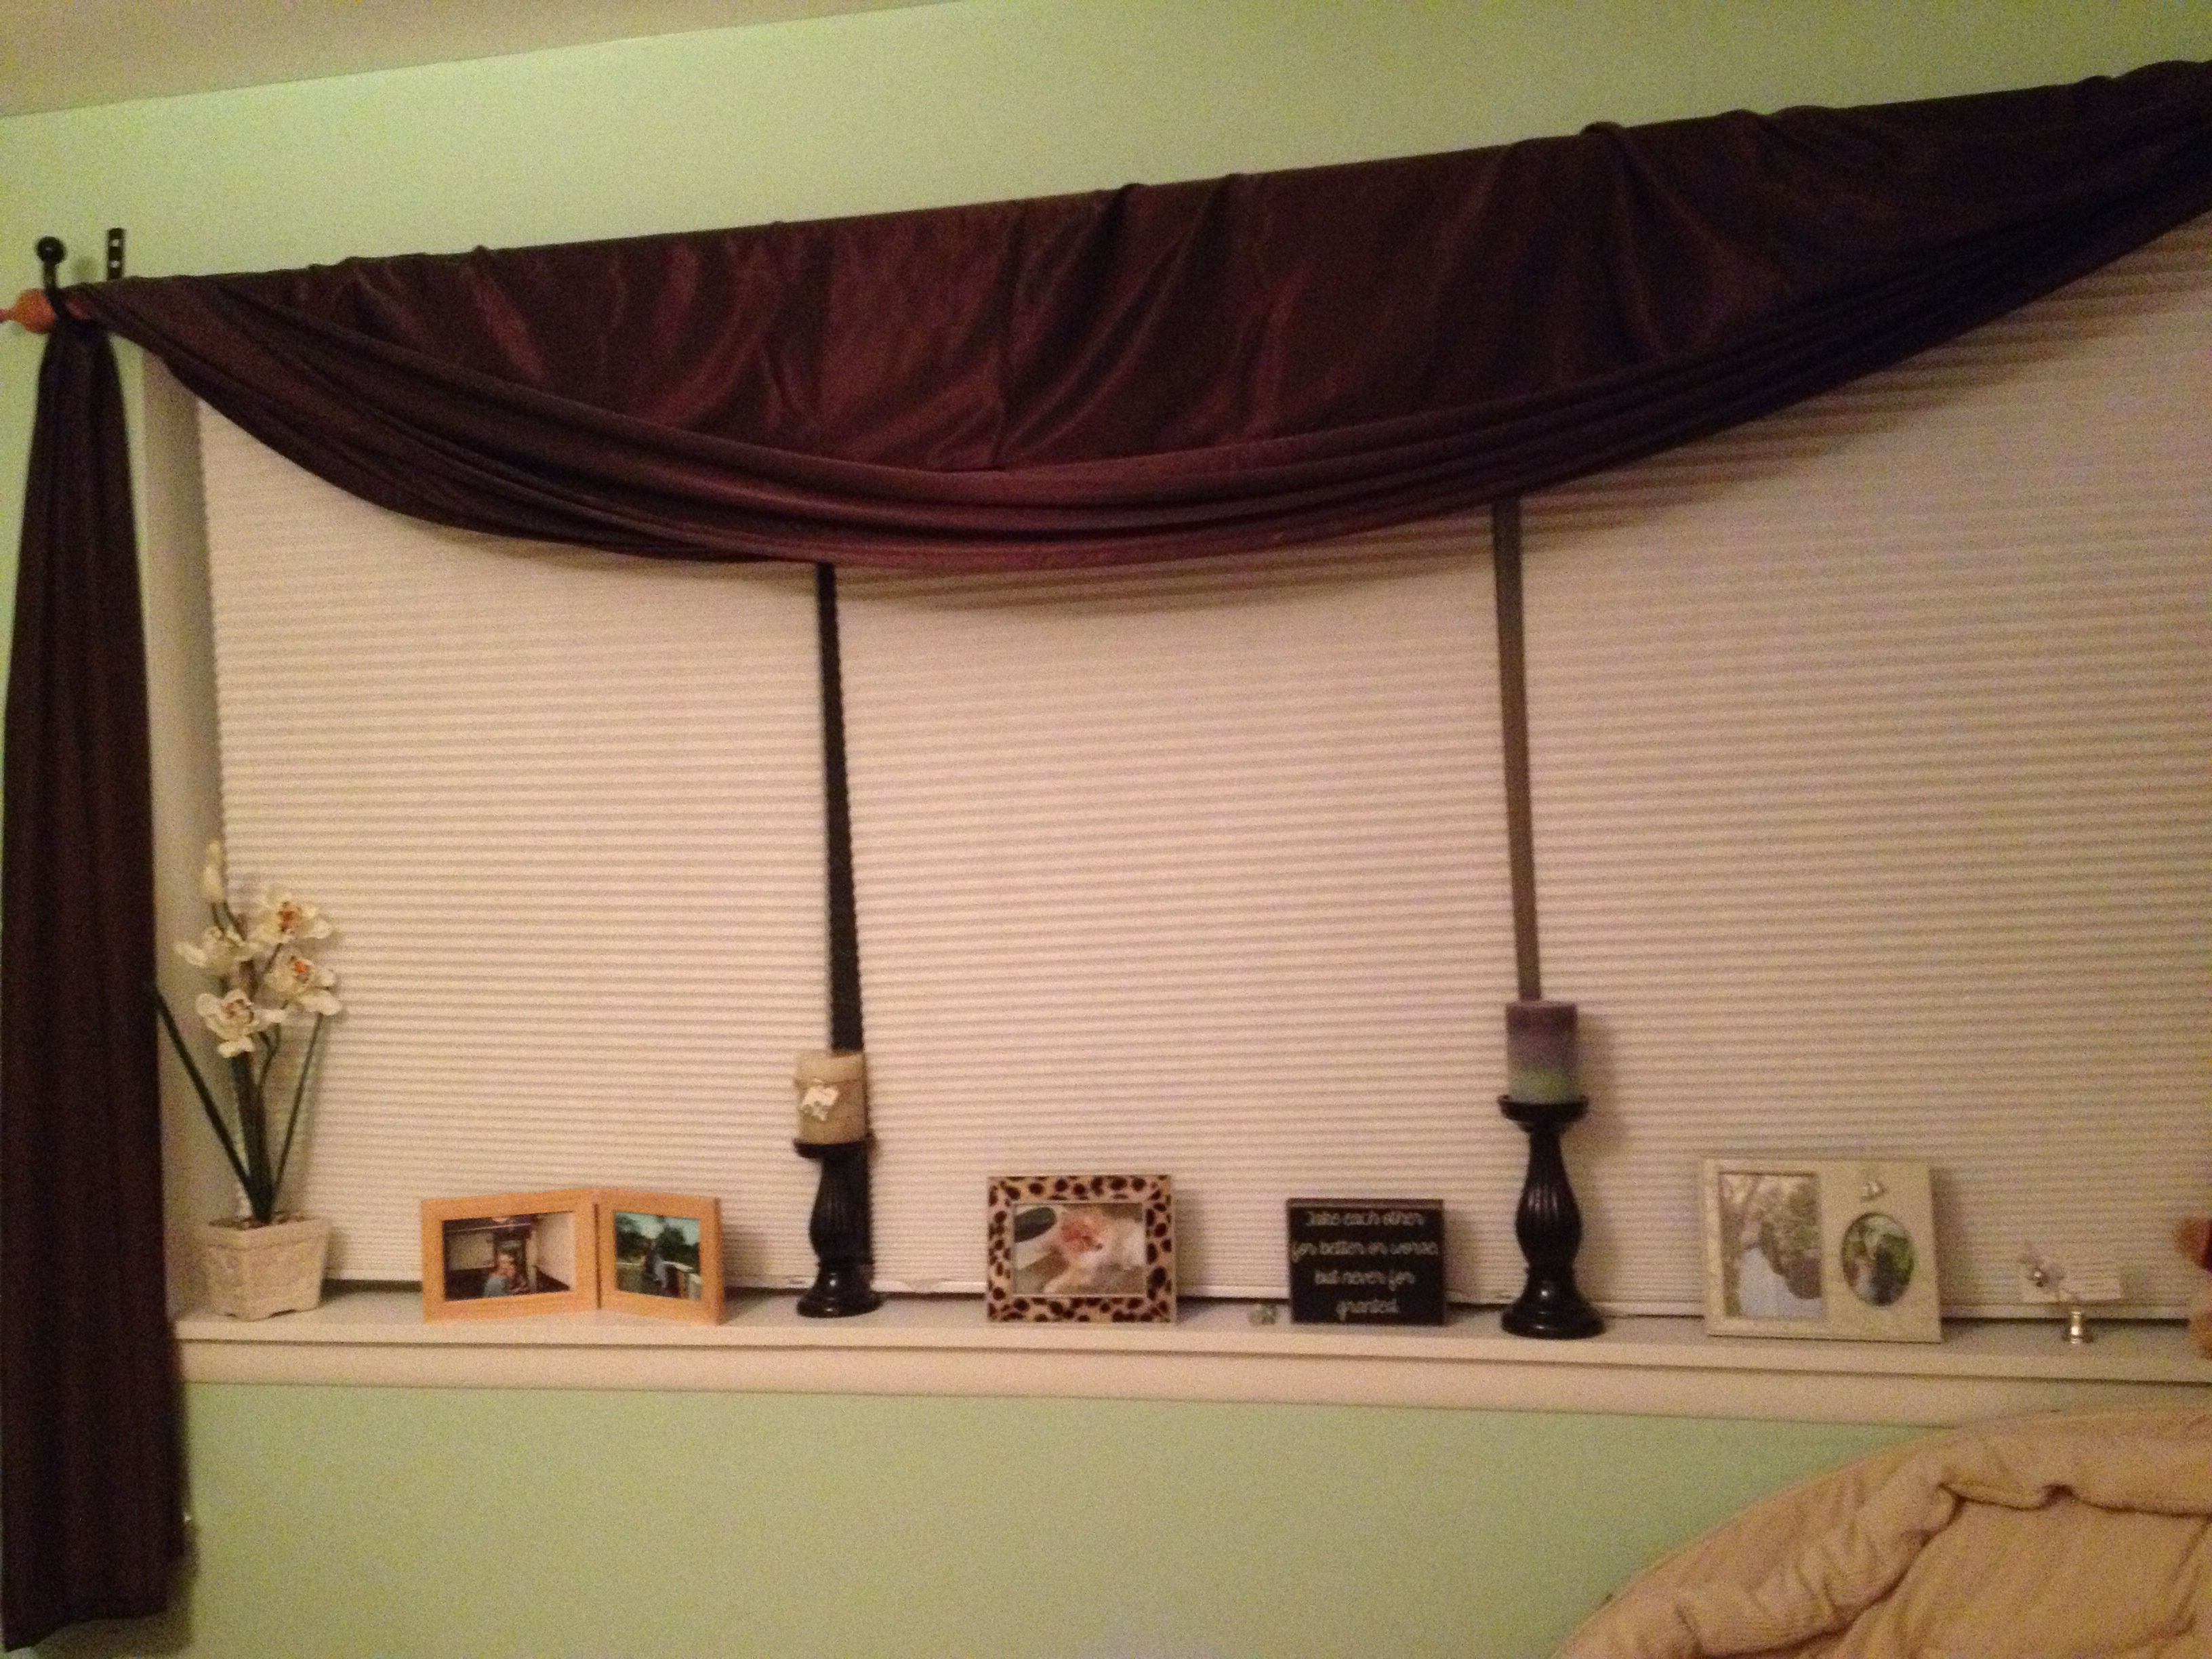 3 Panel Window With Photos Frames Candle Sticks And Word Quote Blocks On The Sill Brown Curtain Matching Comforter Howtomakecurtains